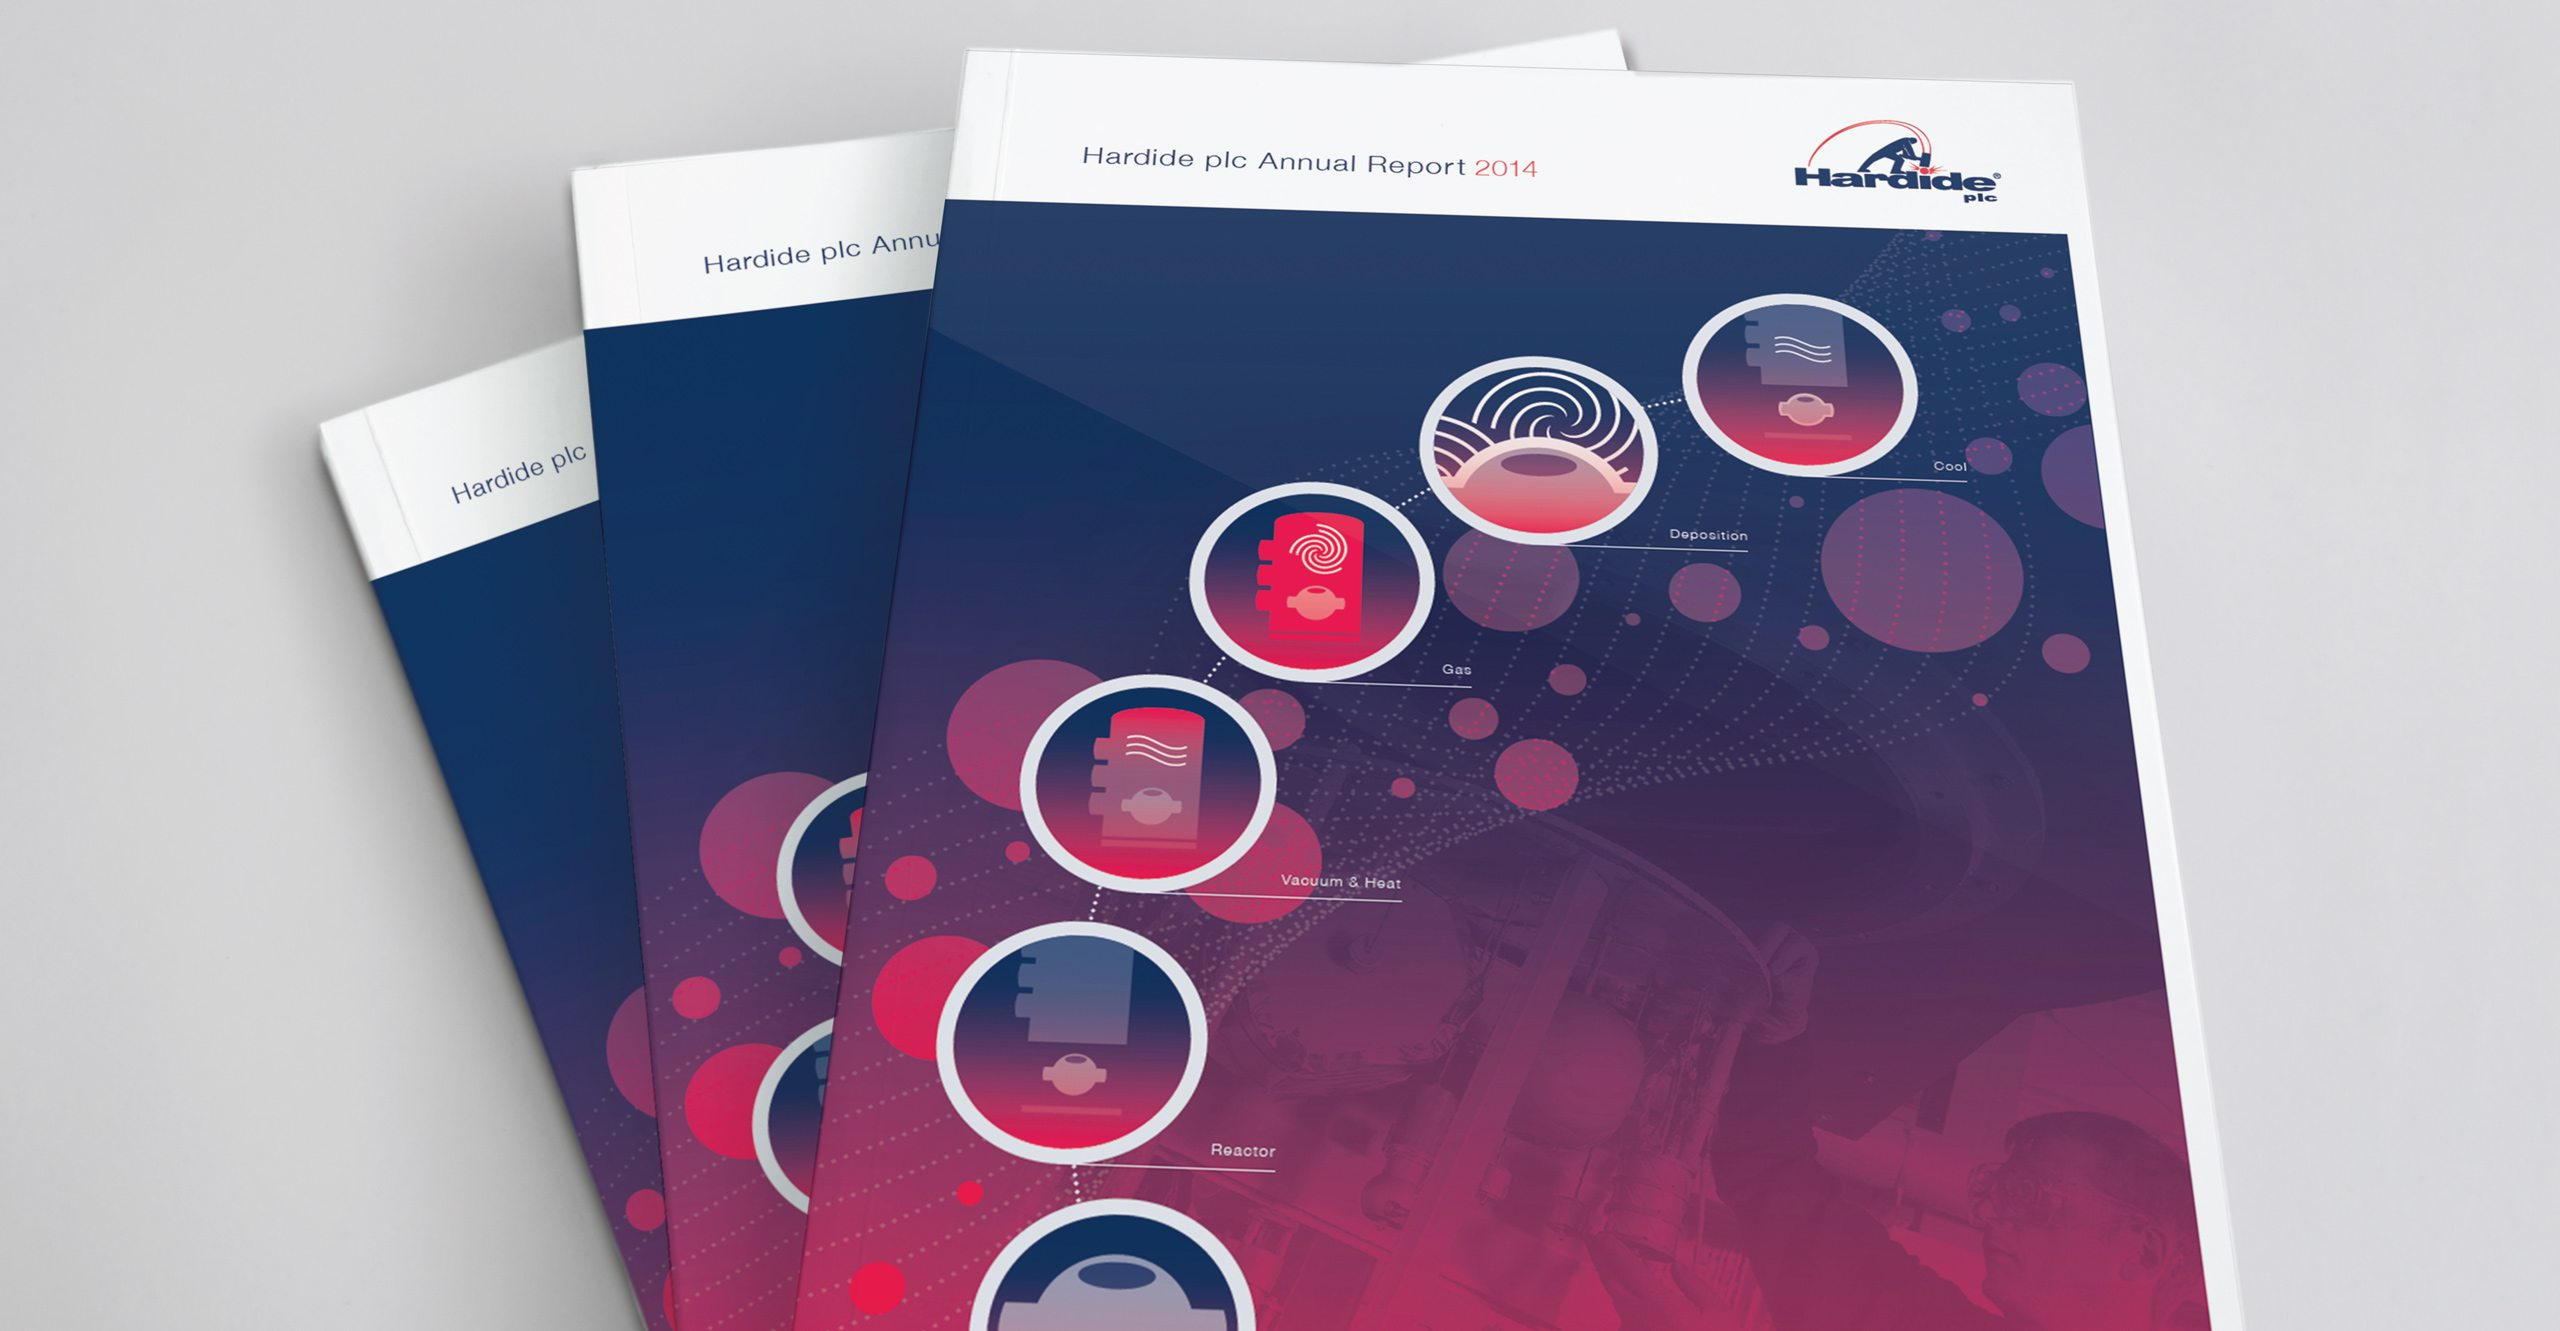 Hardide plc Annual Report Design